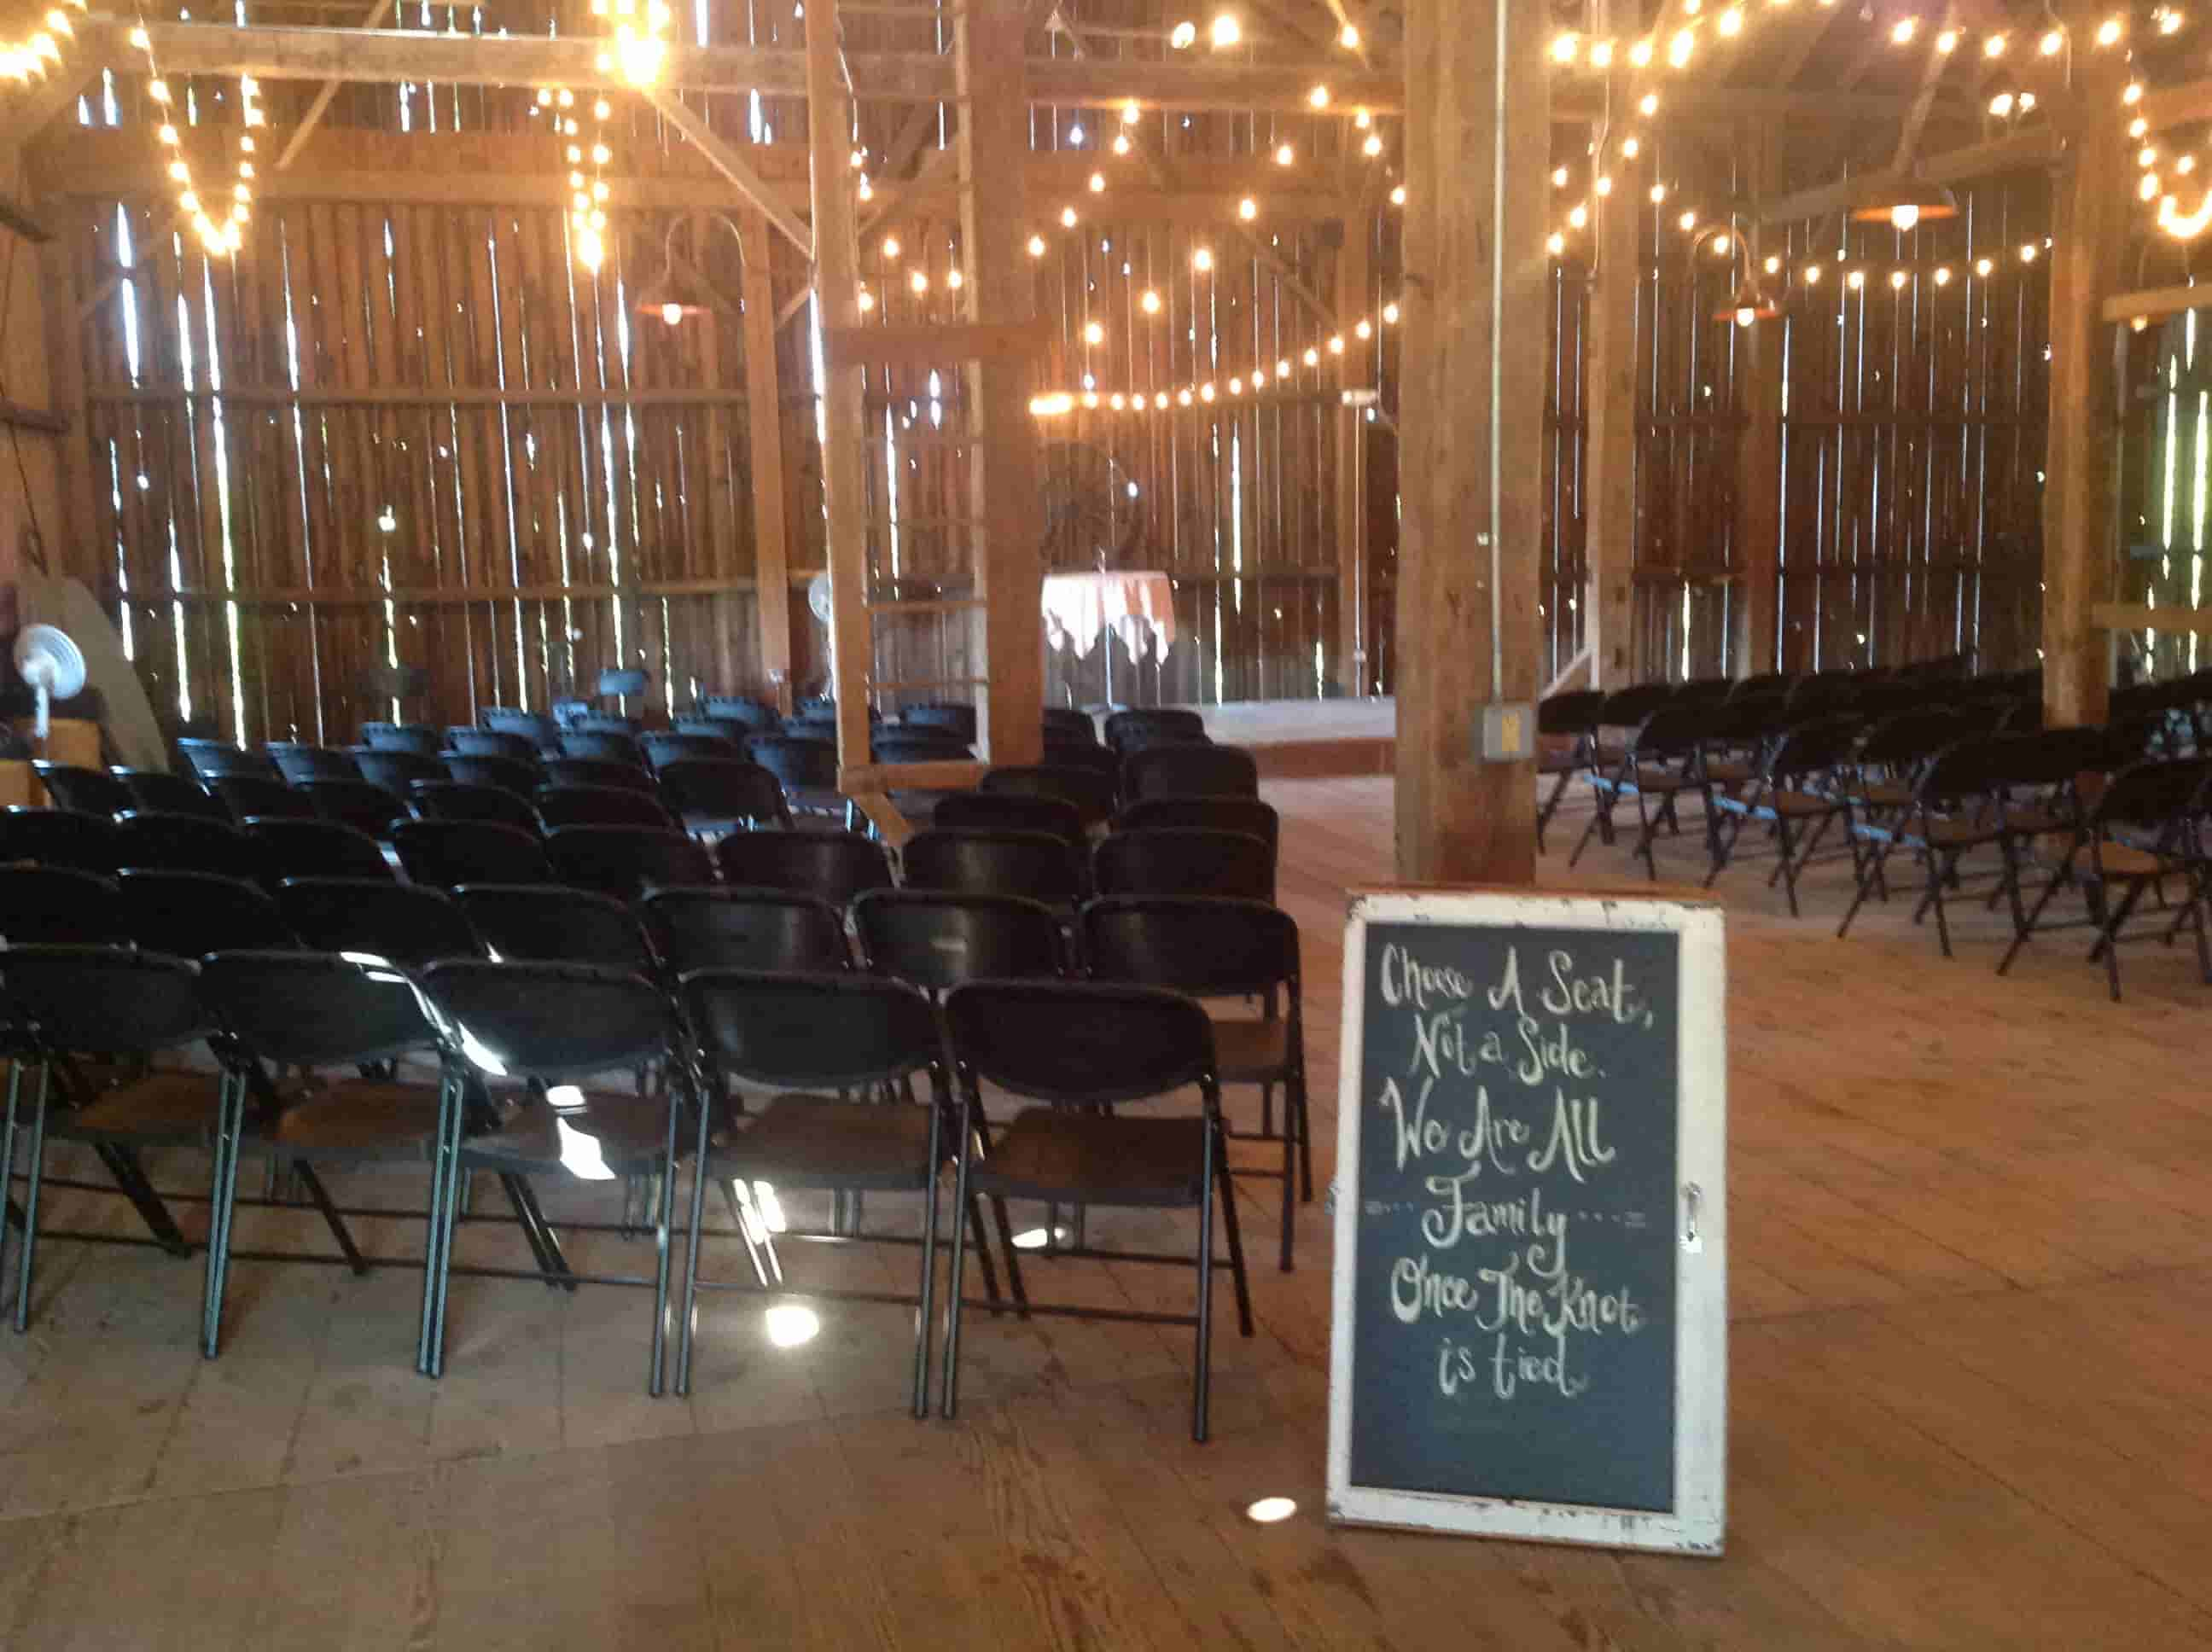 Wedding in the barn